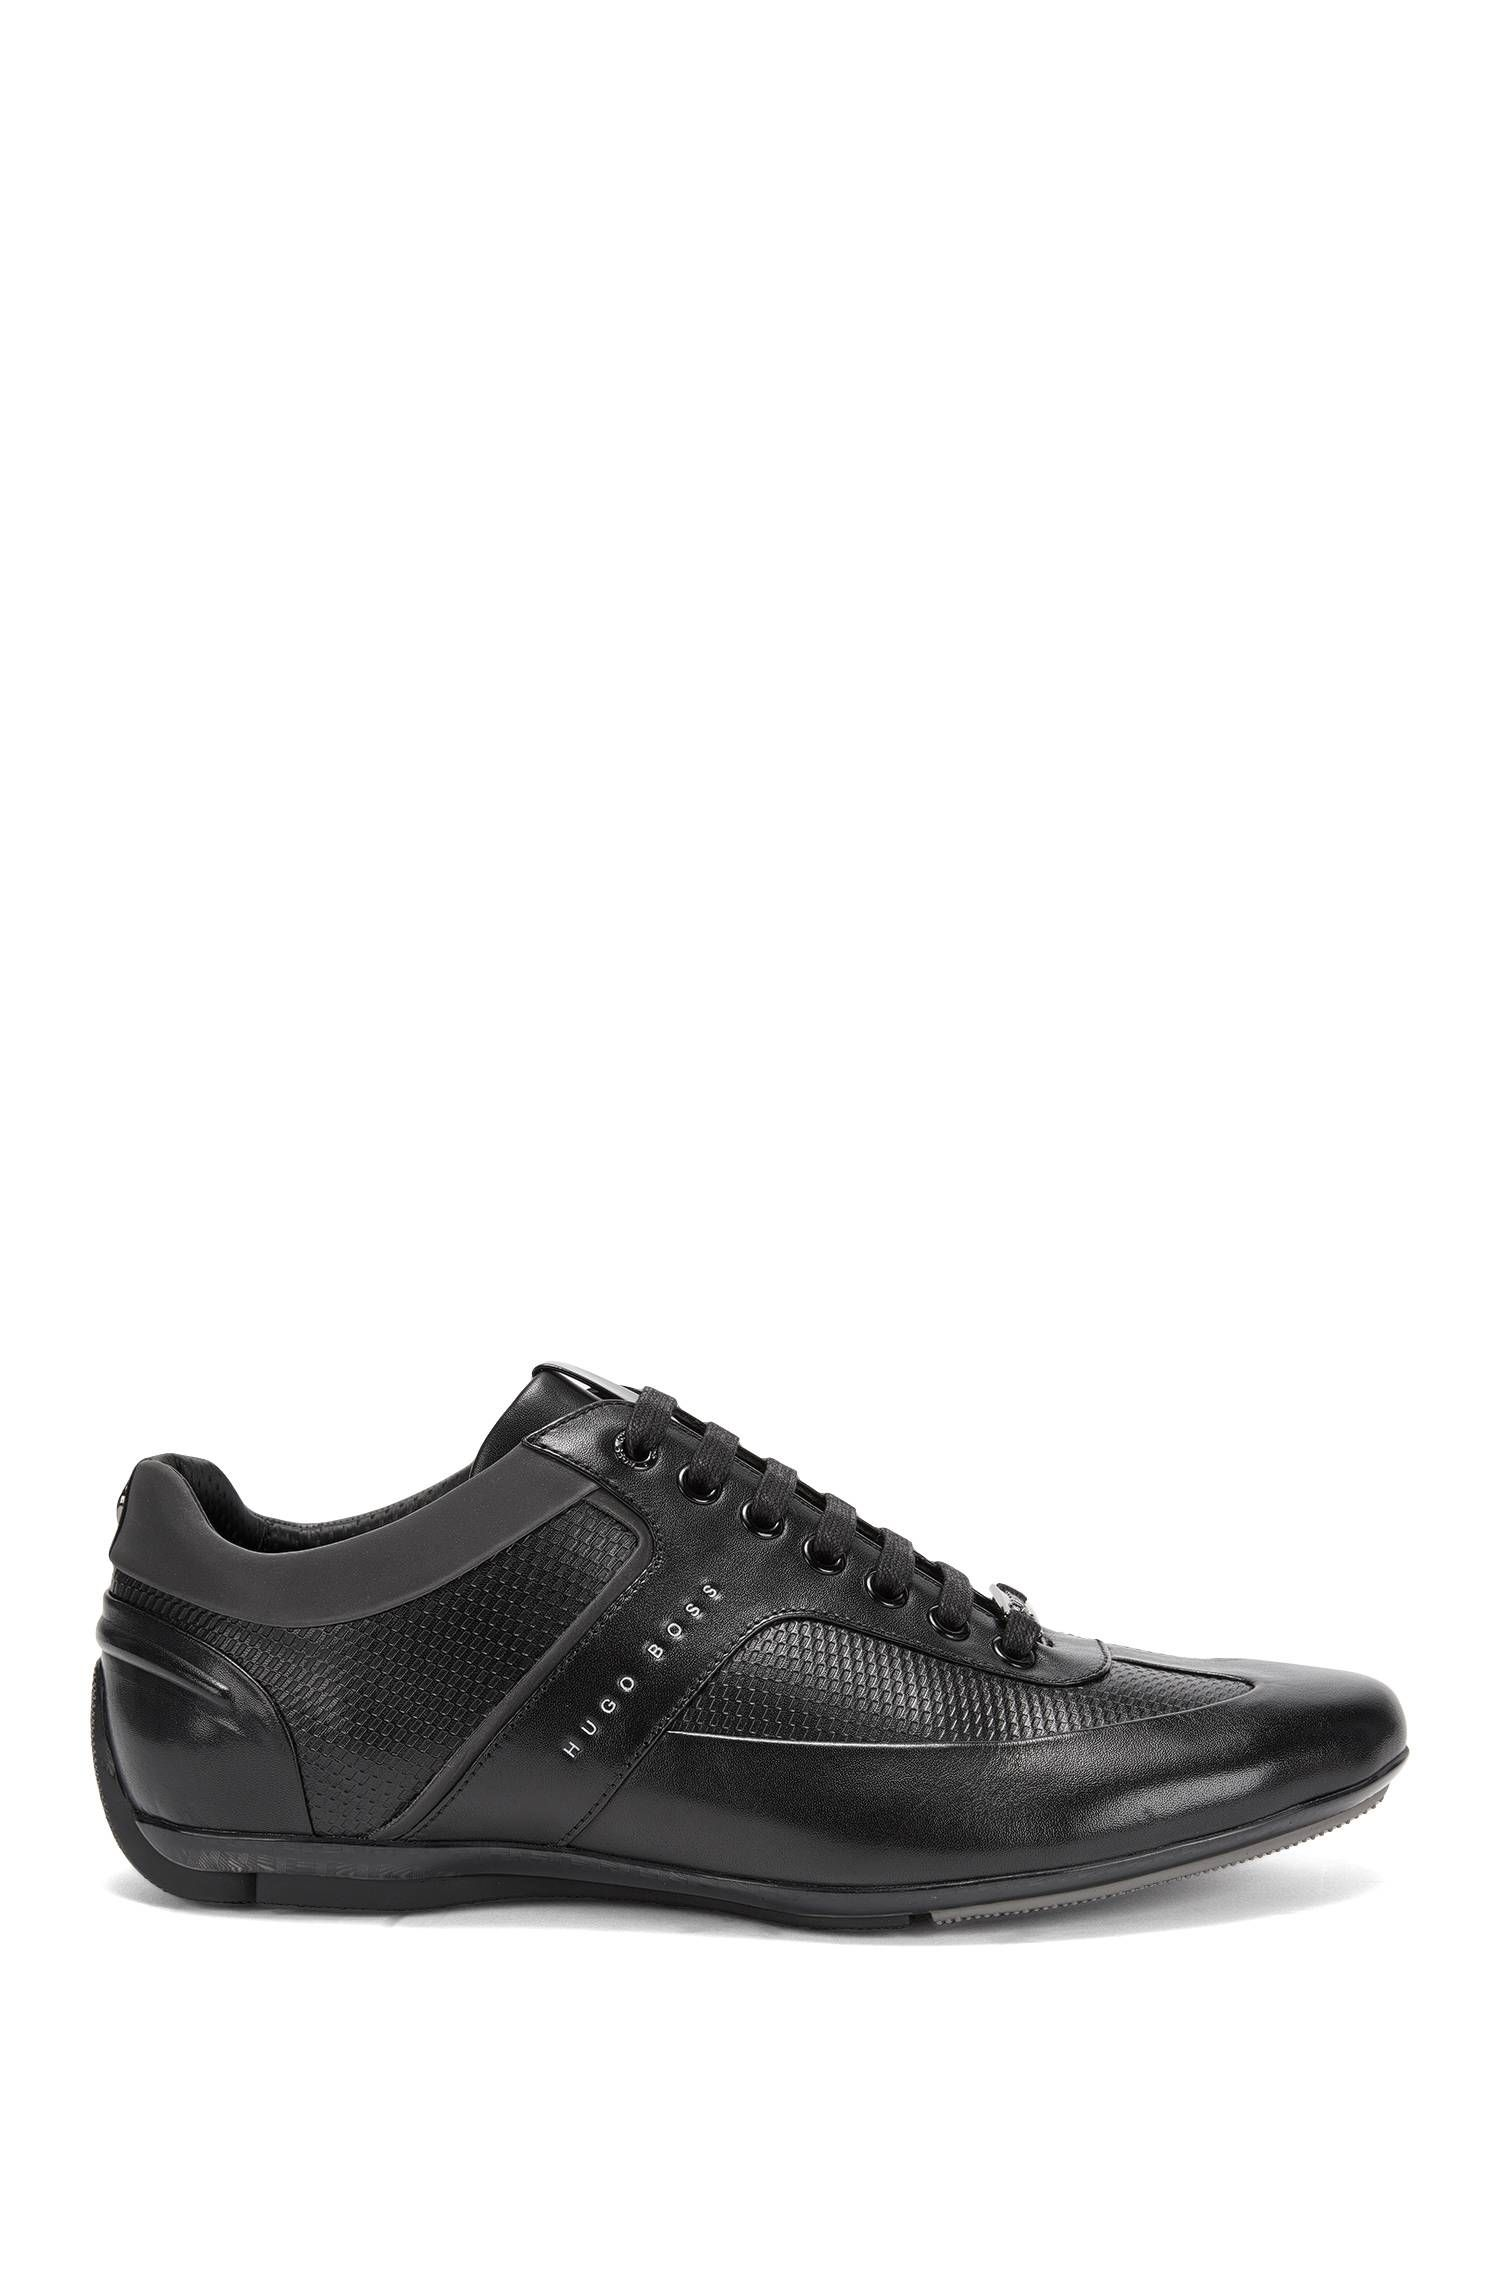 Benz Leather Black Itmb Mercedes SneakerSporty From Lowp rdsQCtBhx